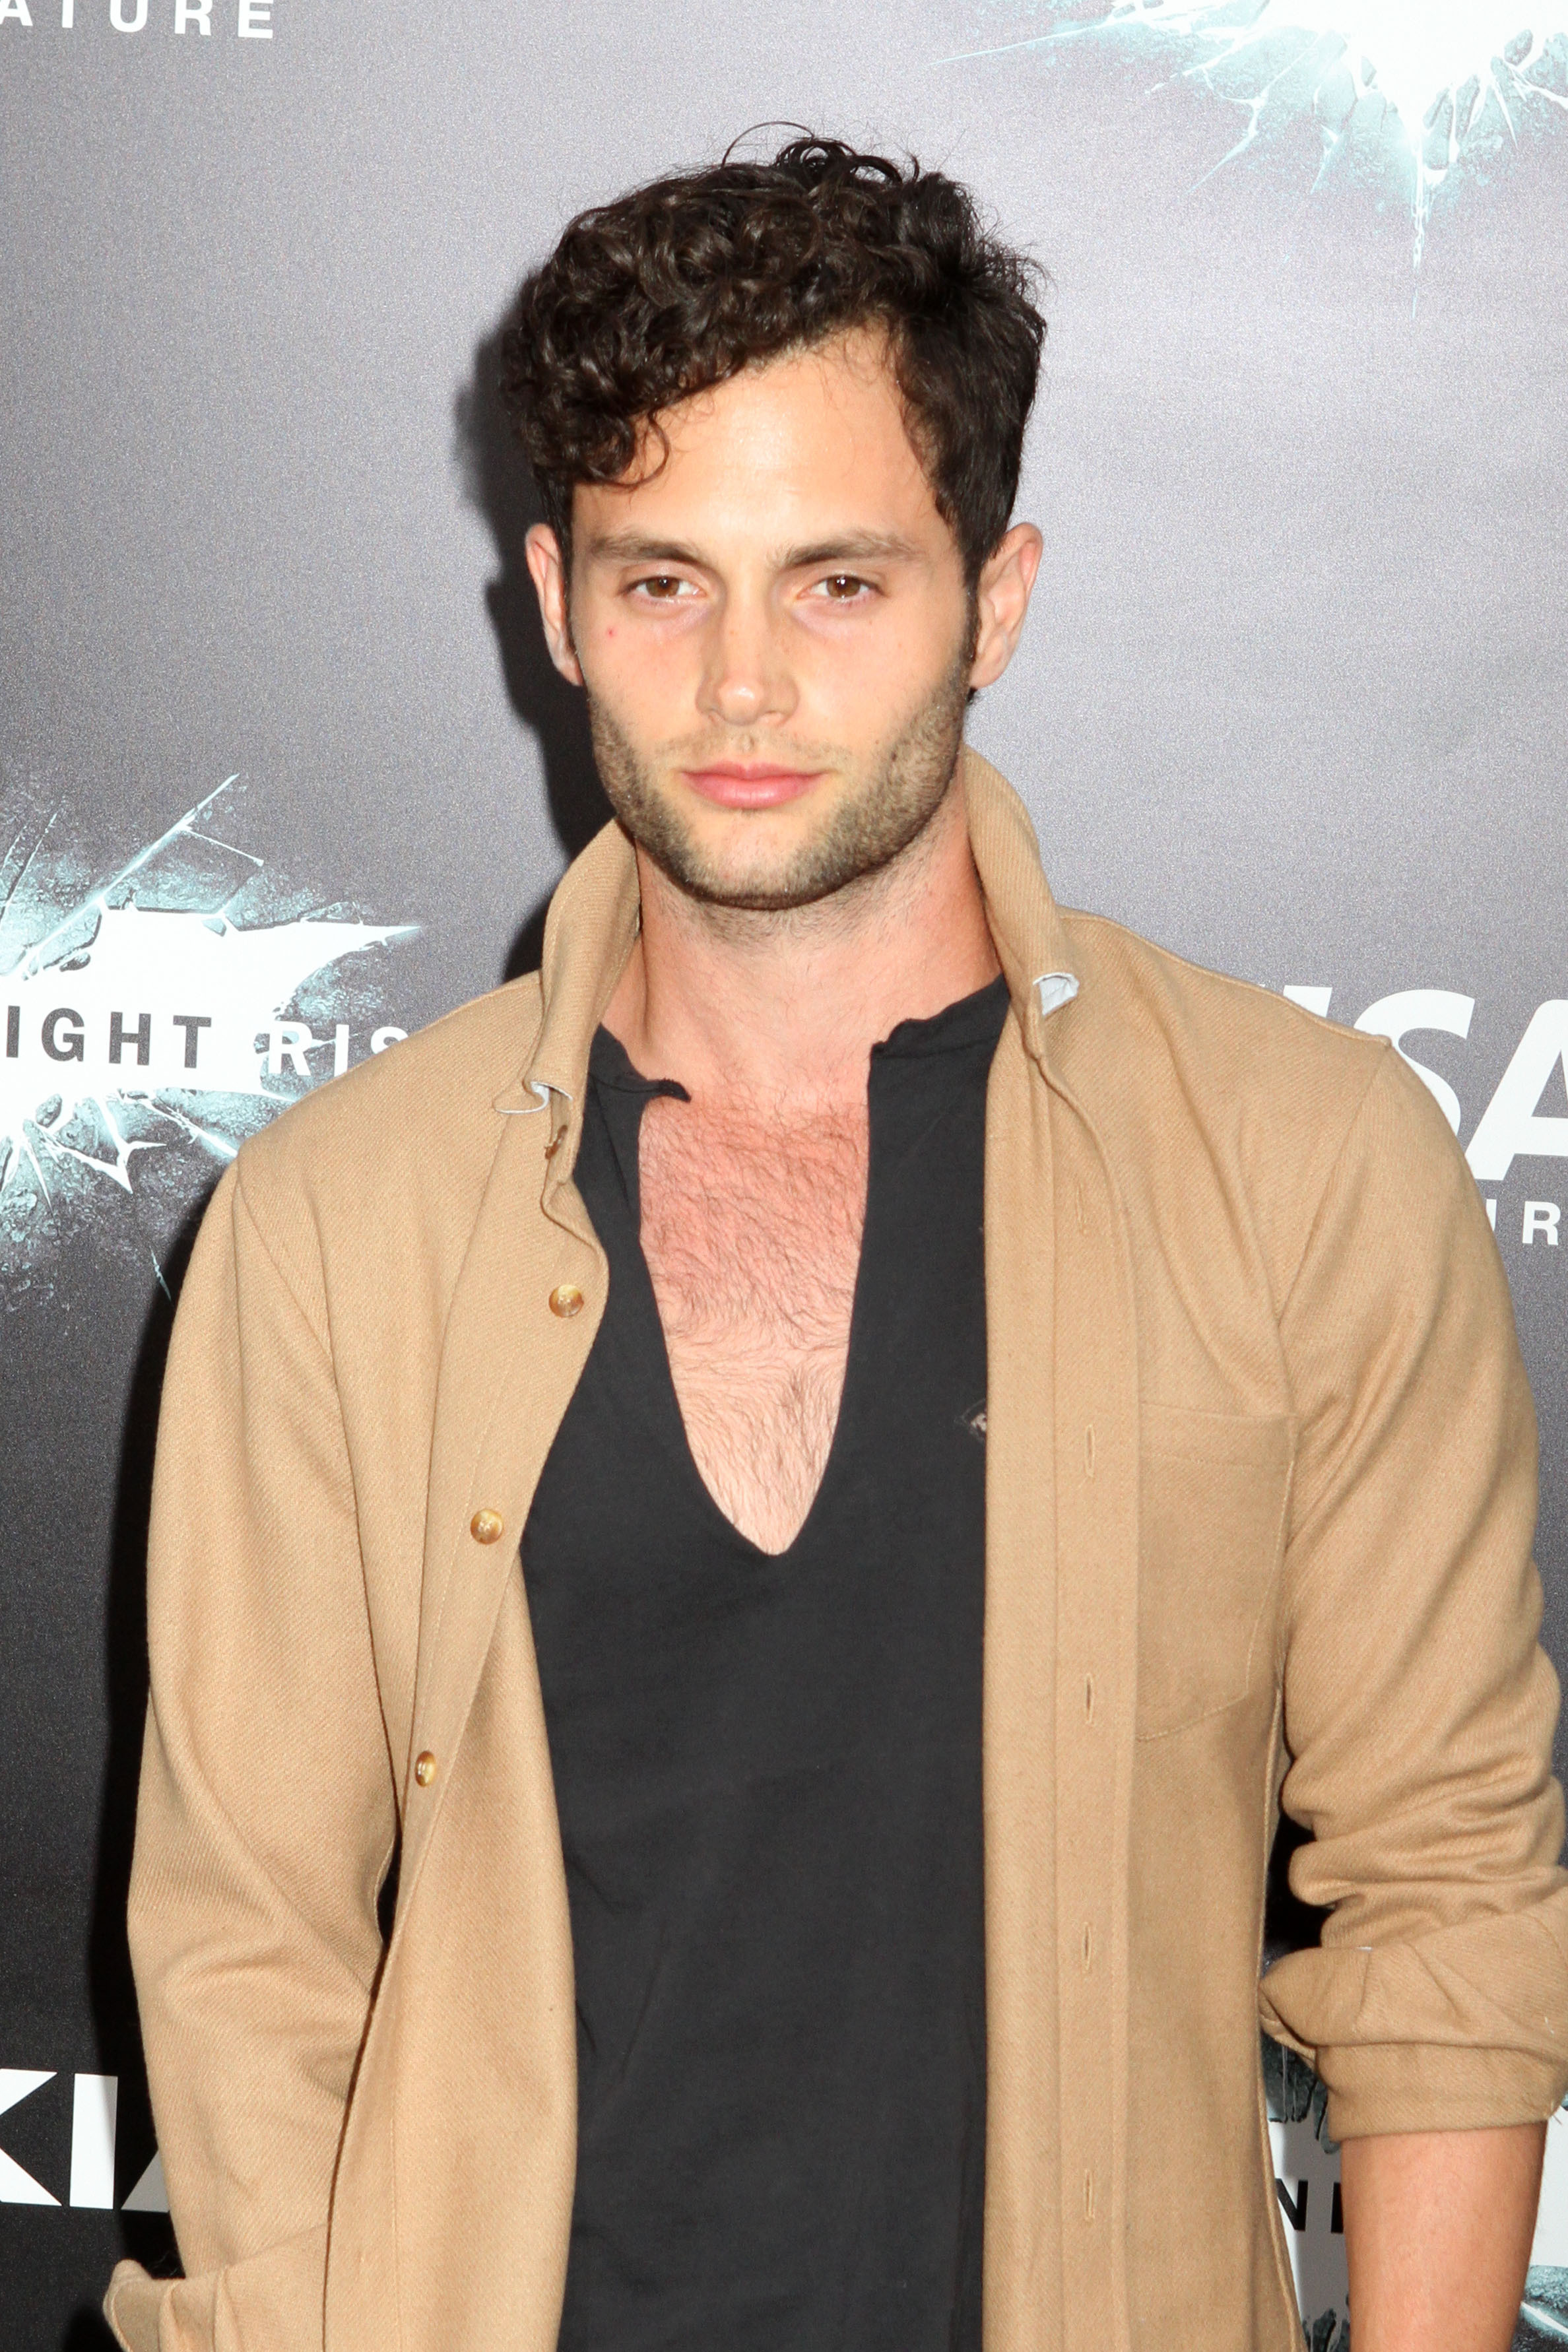 Penn Badgely and his curly hair